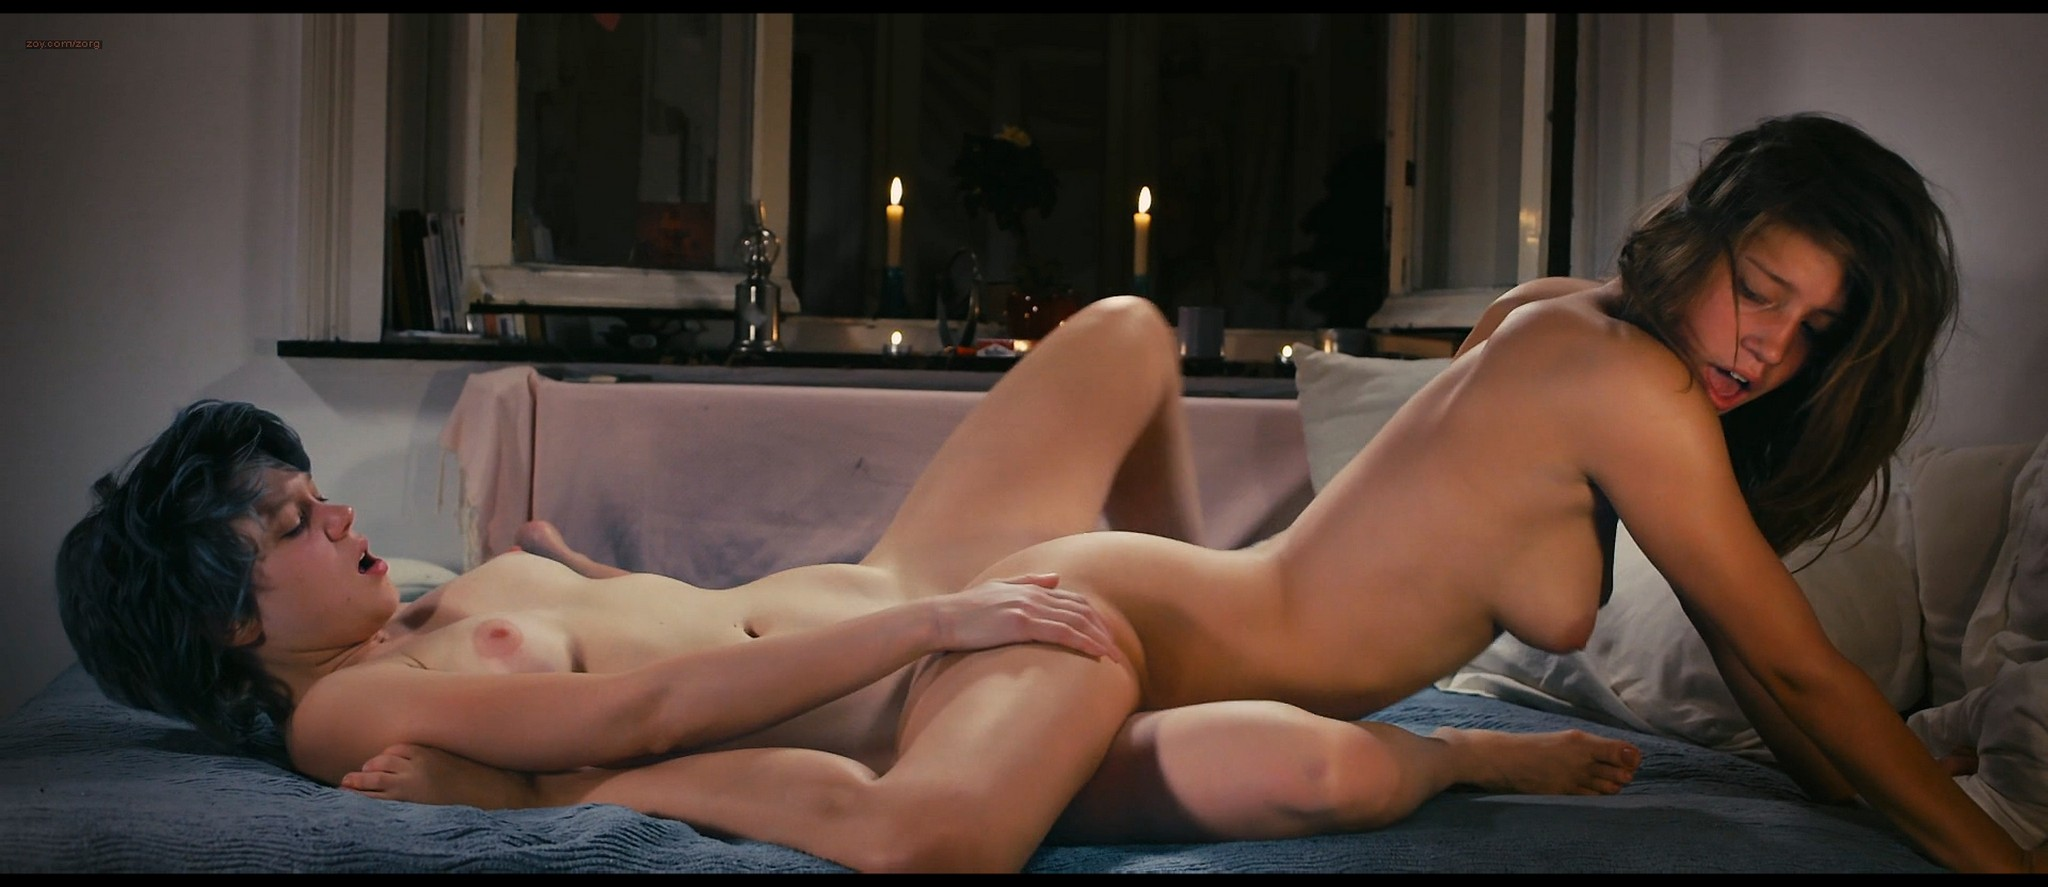 Lea Seydoux and Adele Exarchopoulos in explicit lesbian sex all nude - Blue Is the Warmest Color (2013) HD 1080p BluRay (9)